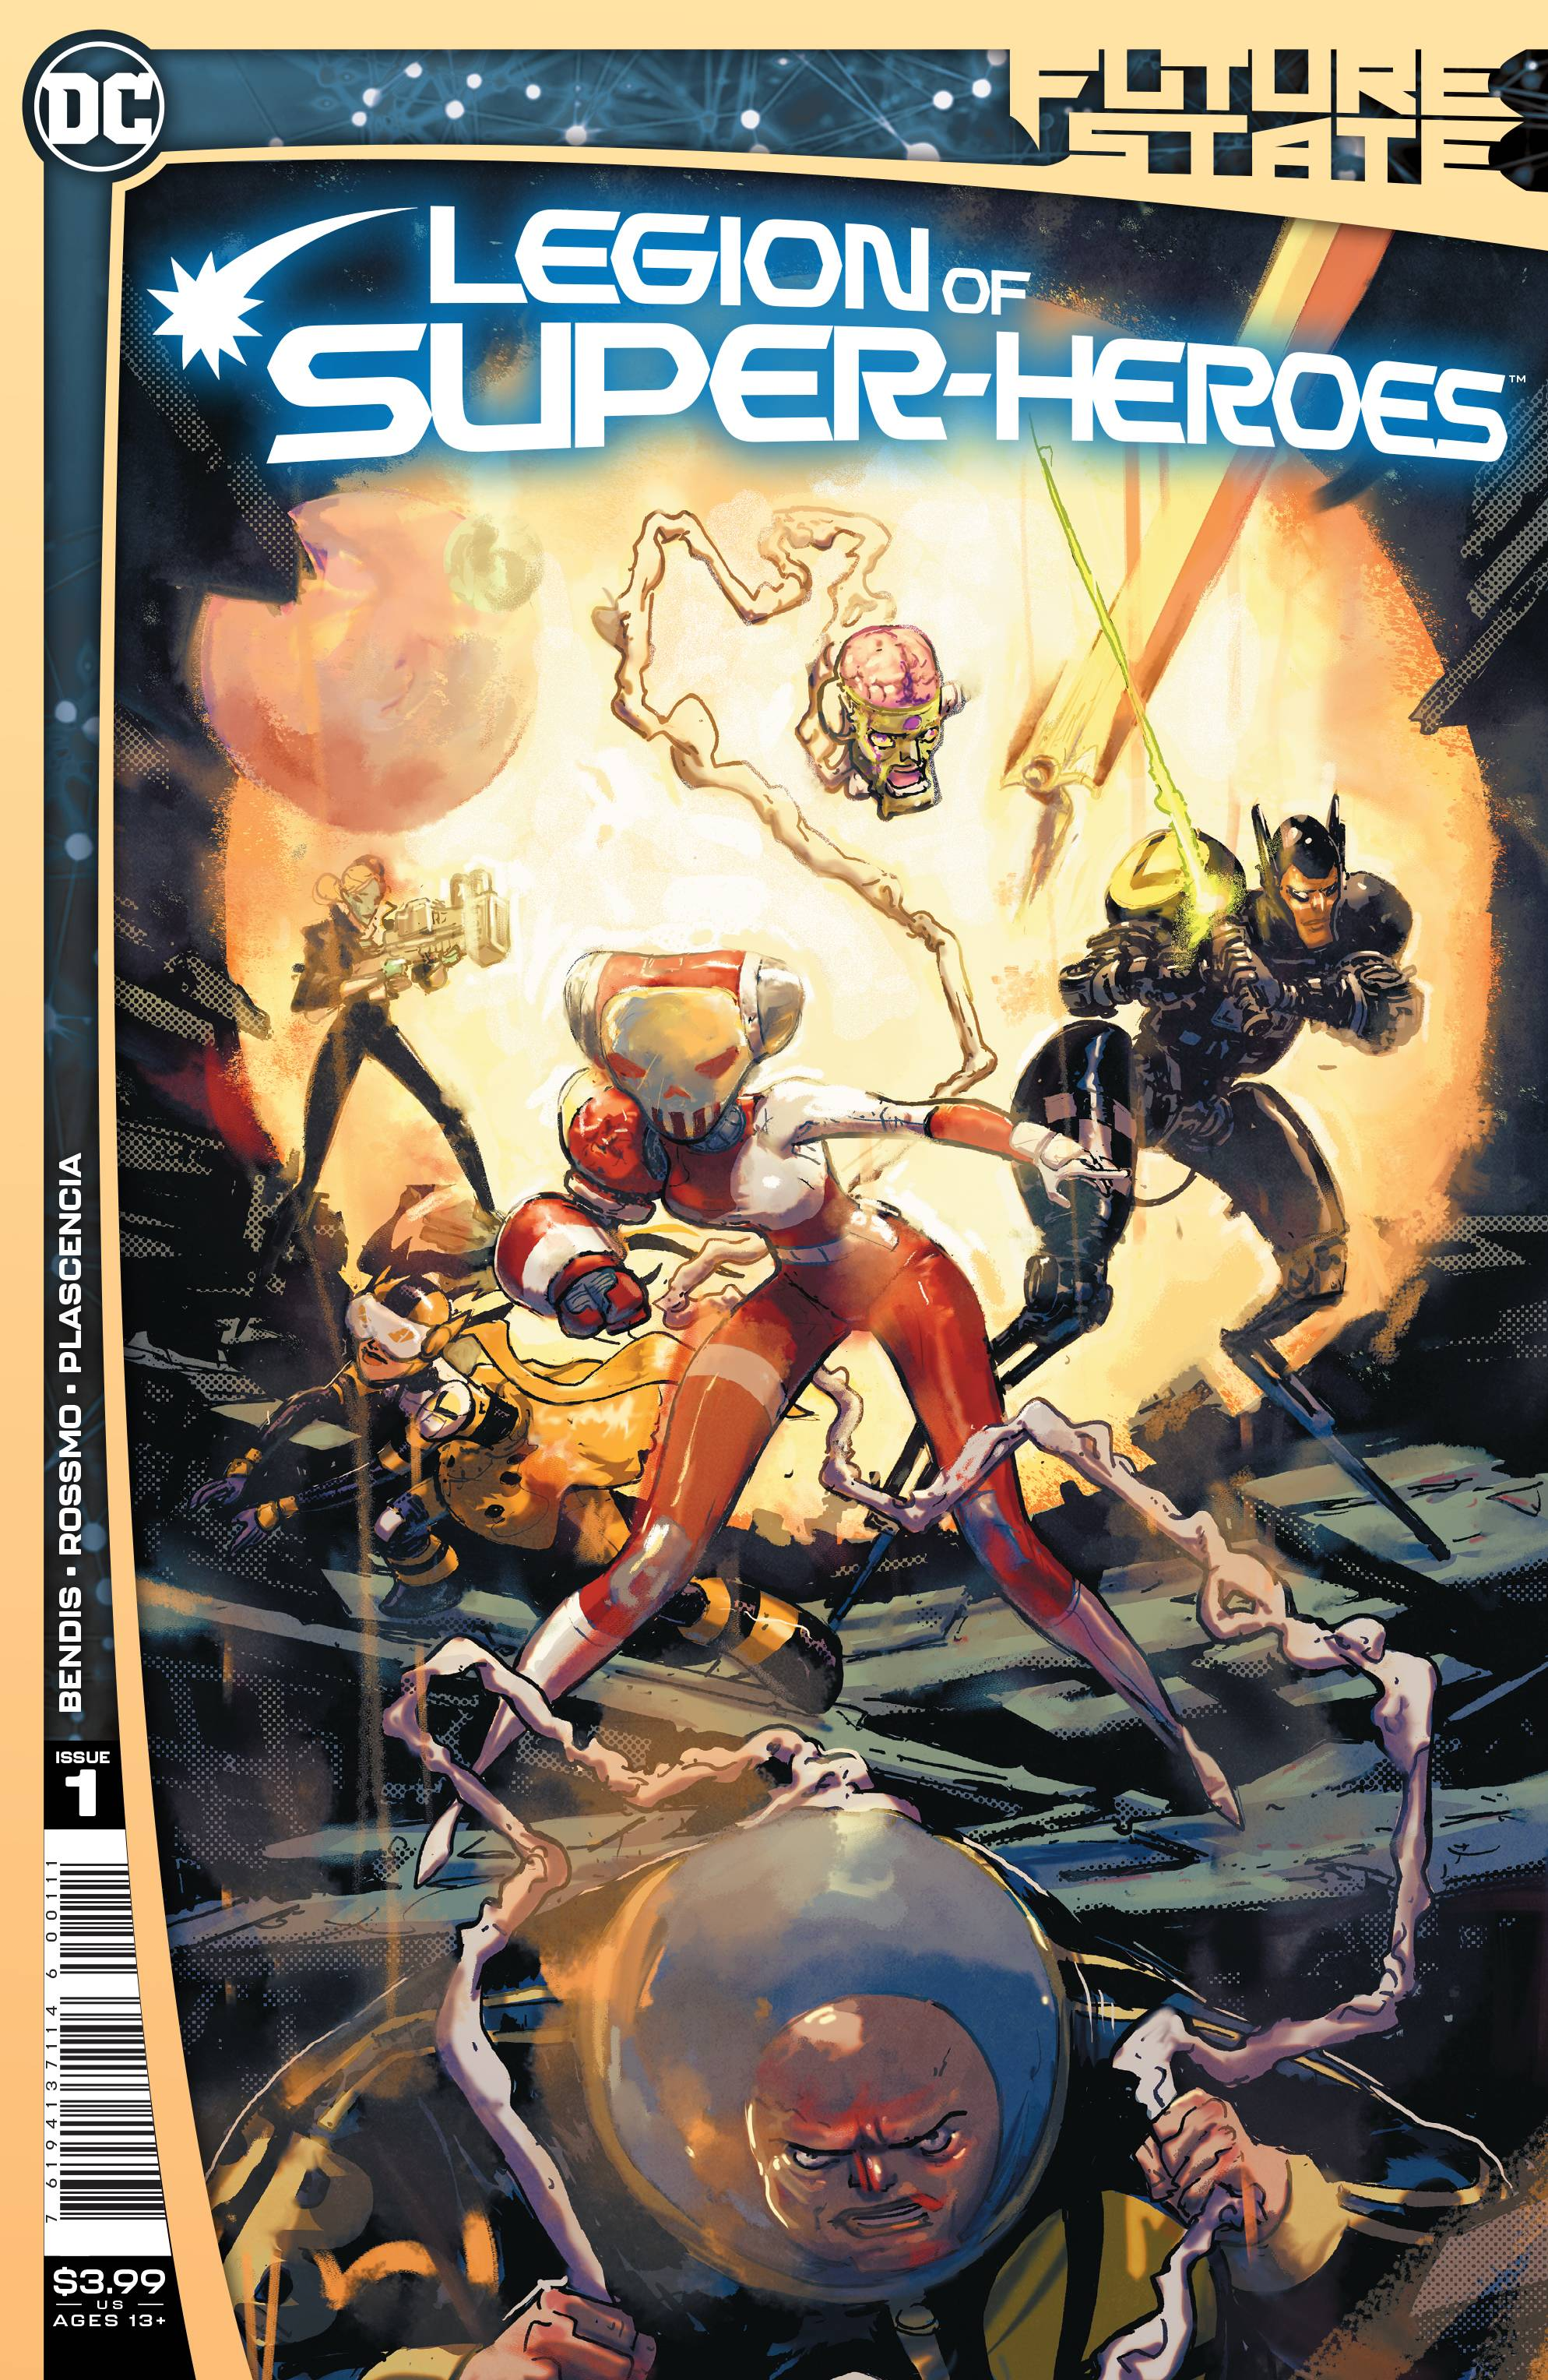 FUTURE STATE LEGION OF SUPER HEROES #1